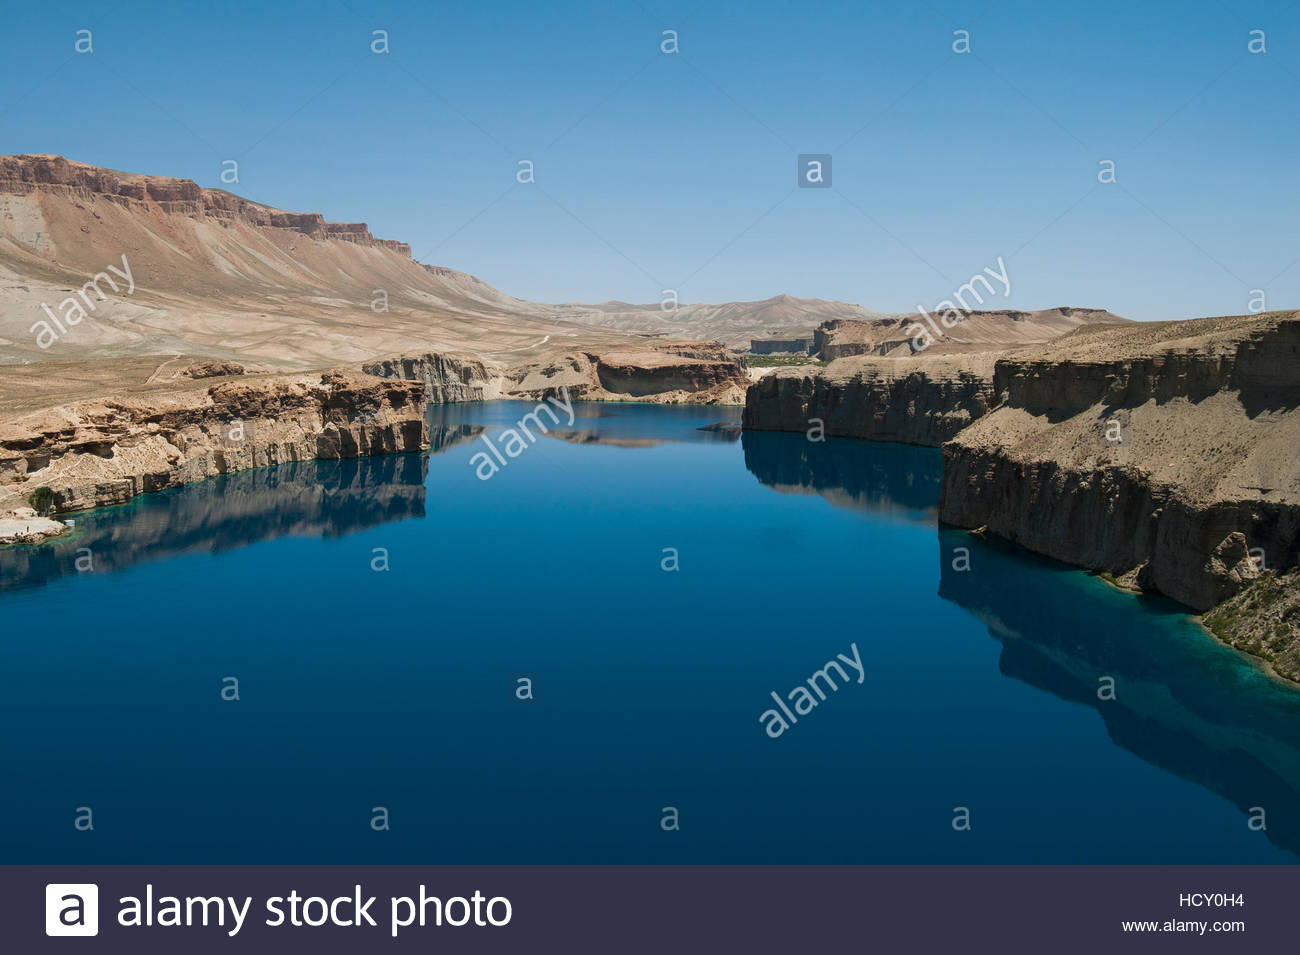 Band-e-Amir Central Asia, The spectacular deep blue lakes of Band-e Amir in central ...